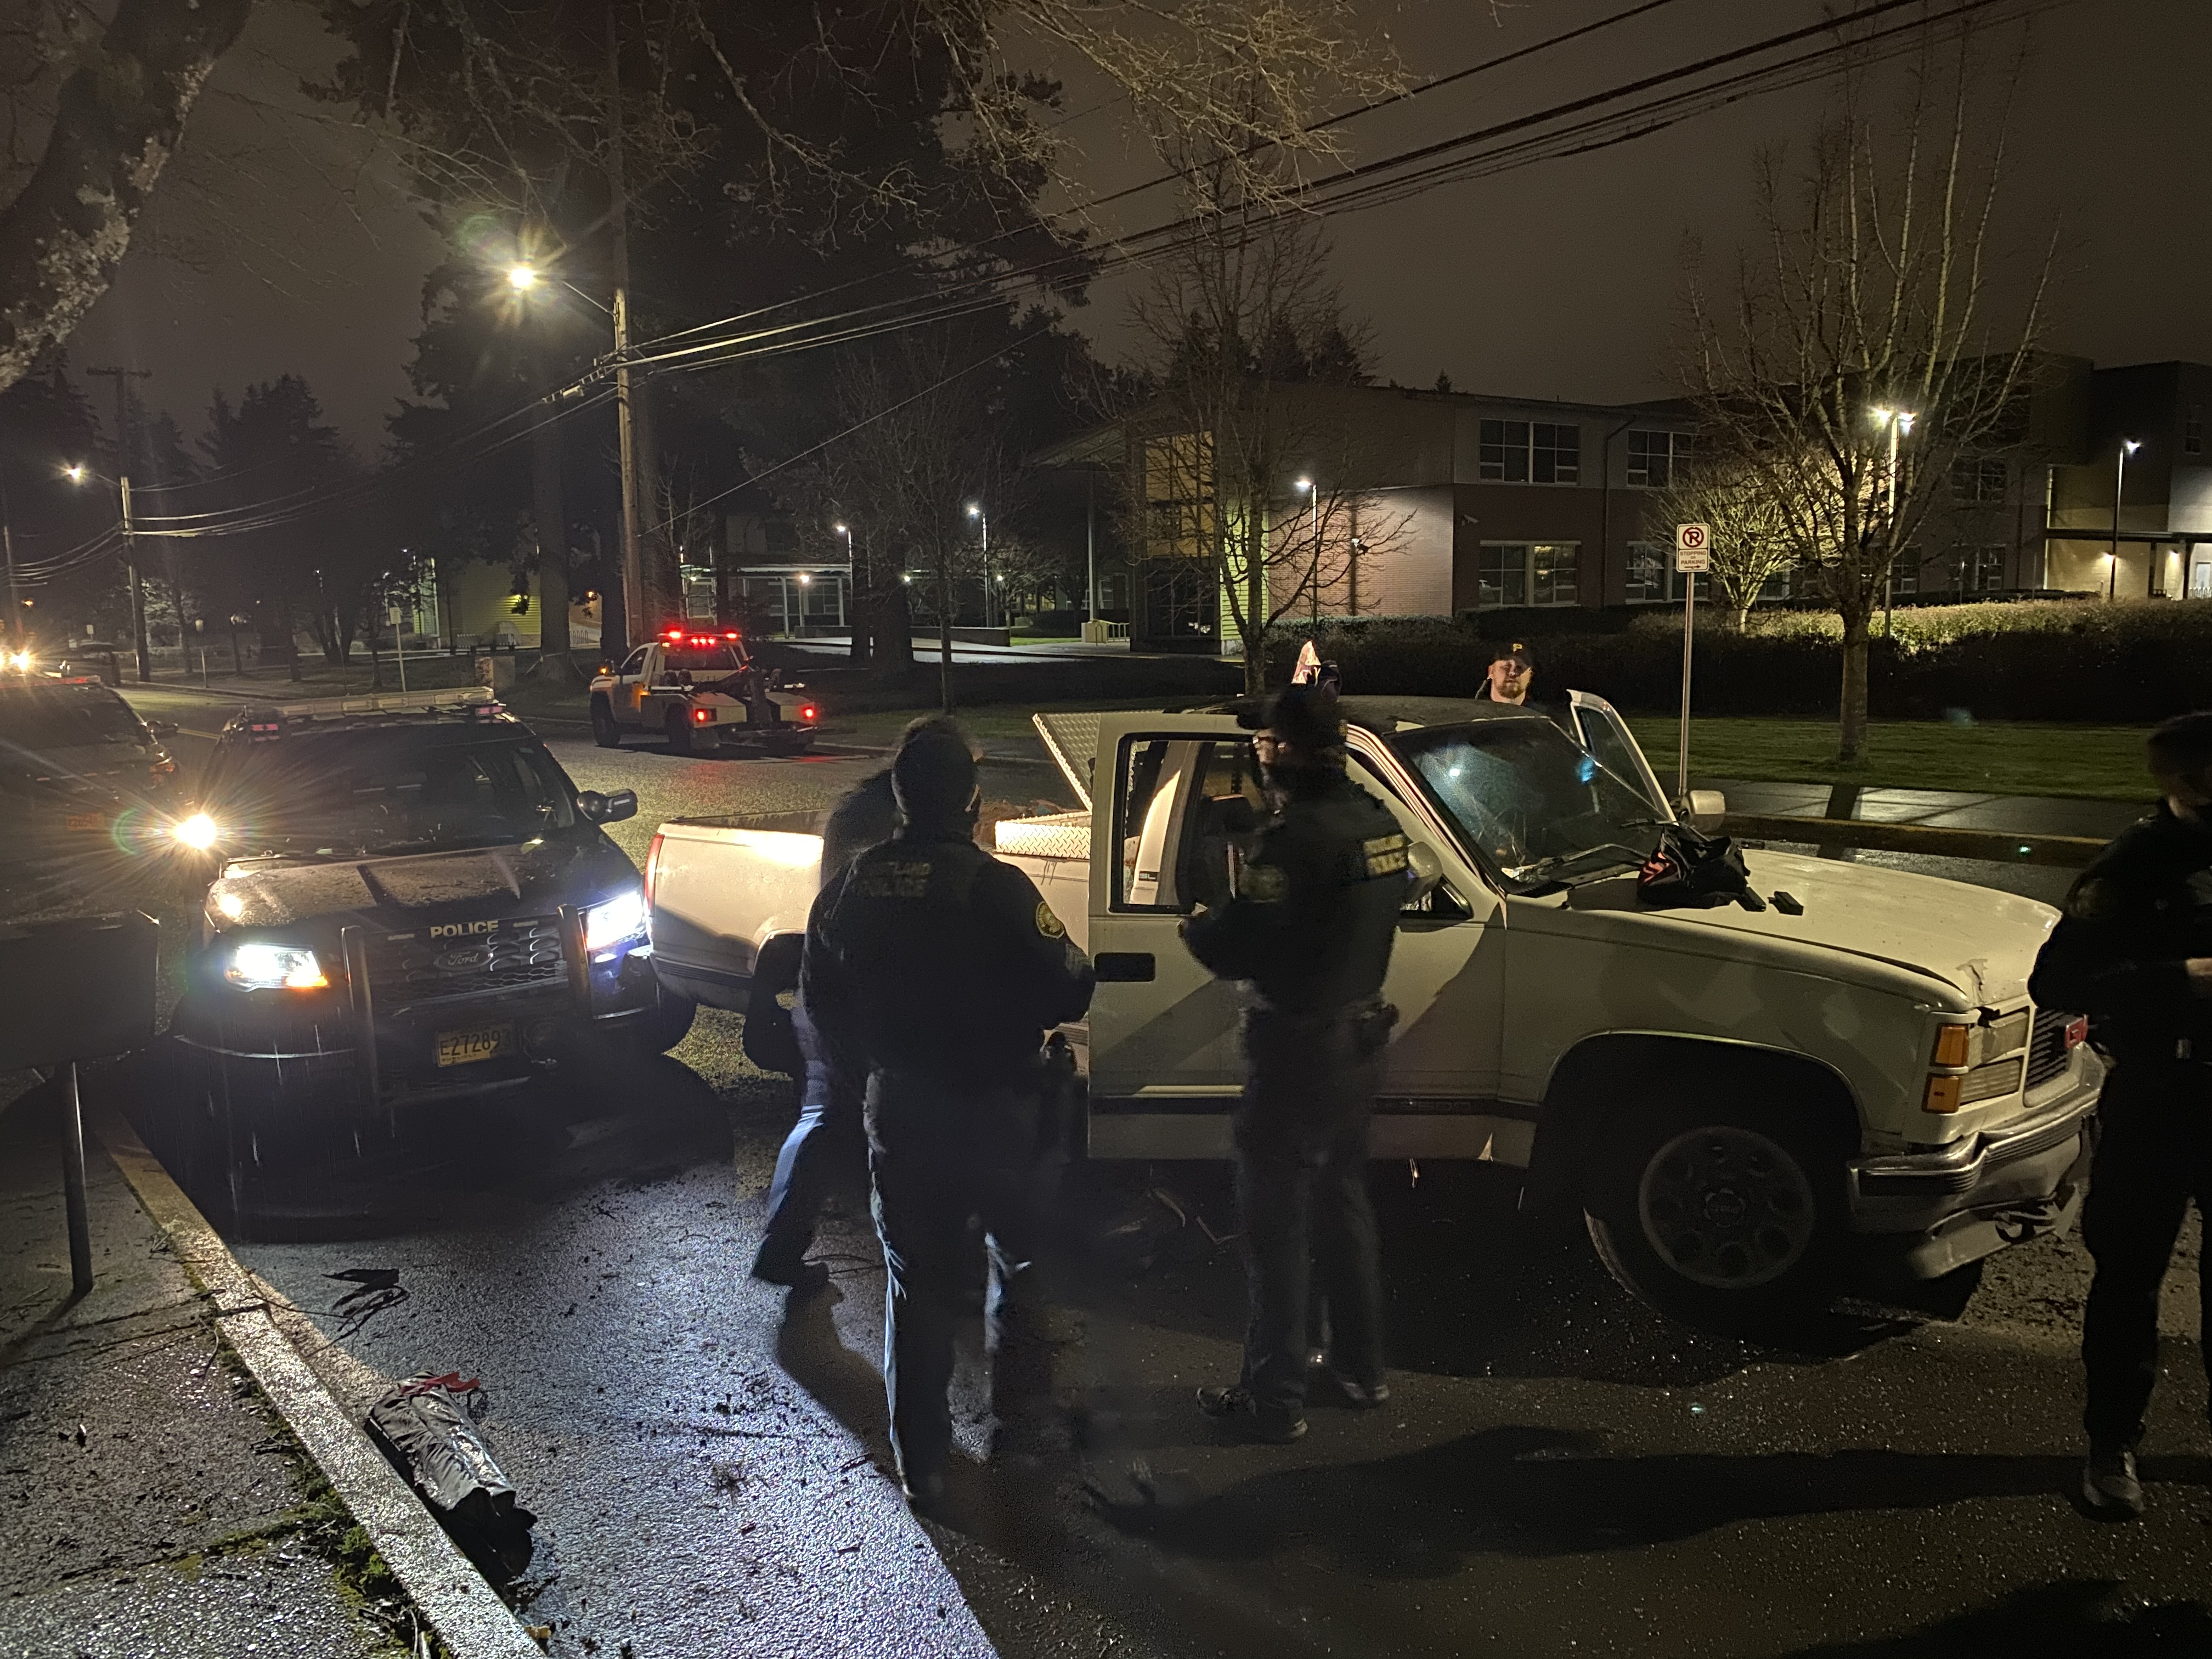 Portland police were in a standoff near Southeast 112th Avenue and Holgate Boulevard for more than three hours Friday night, March 5, 2021 with someone they said was a wanted felon. (Photo: Portland Police Bureau)